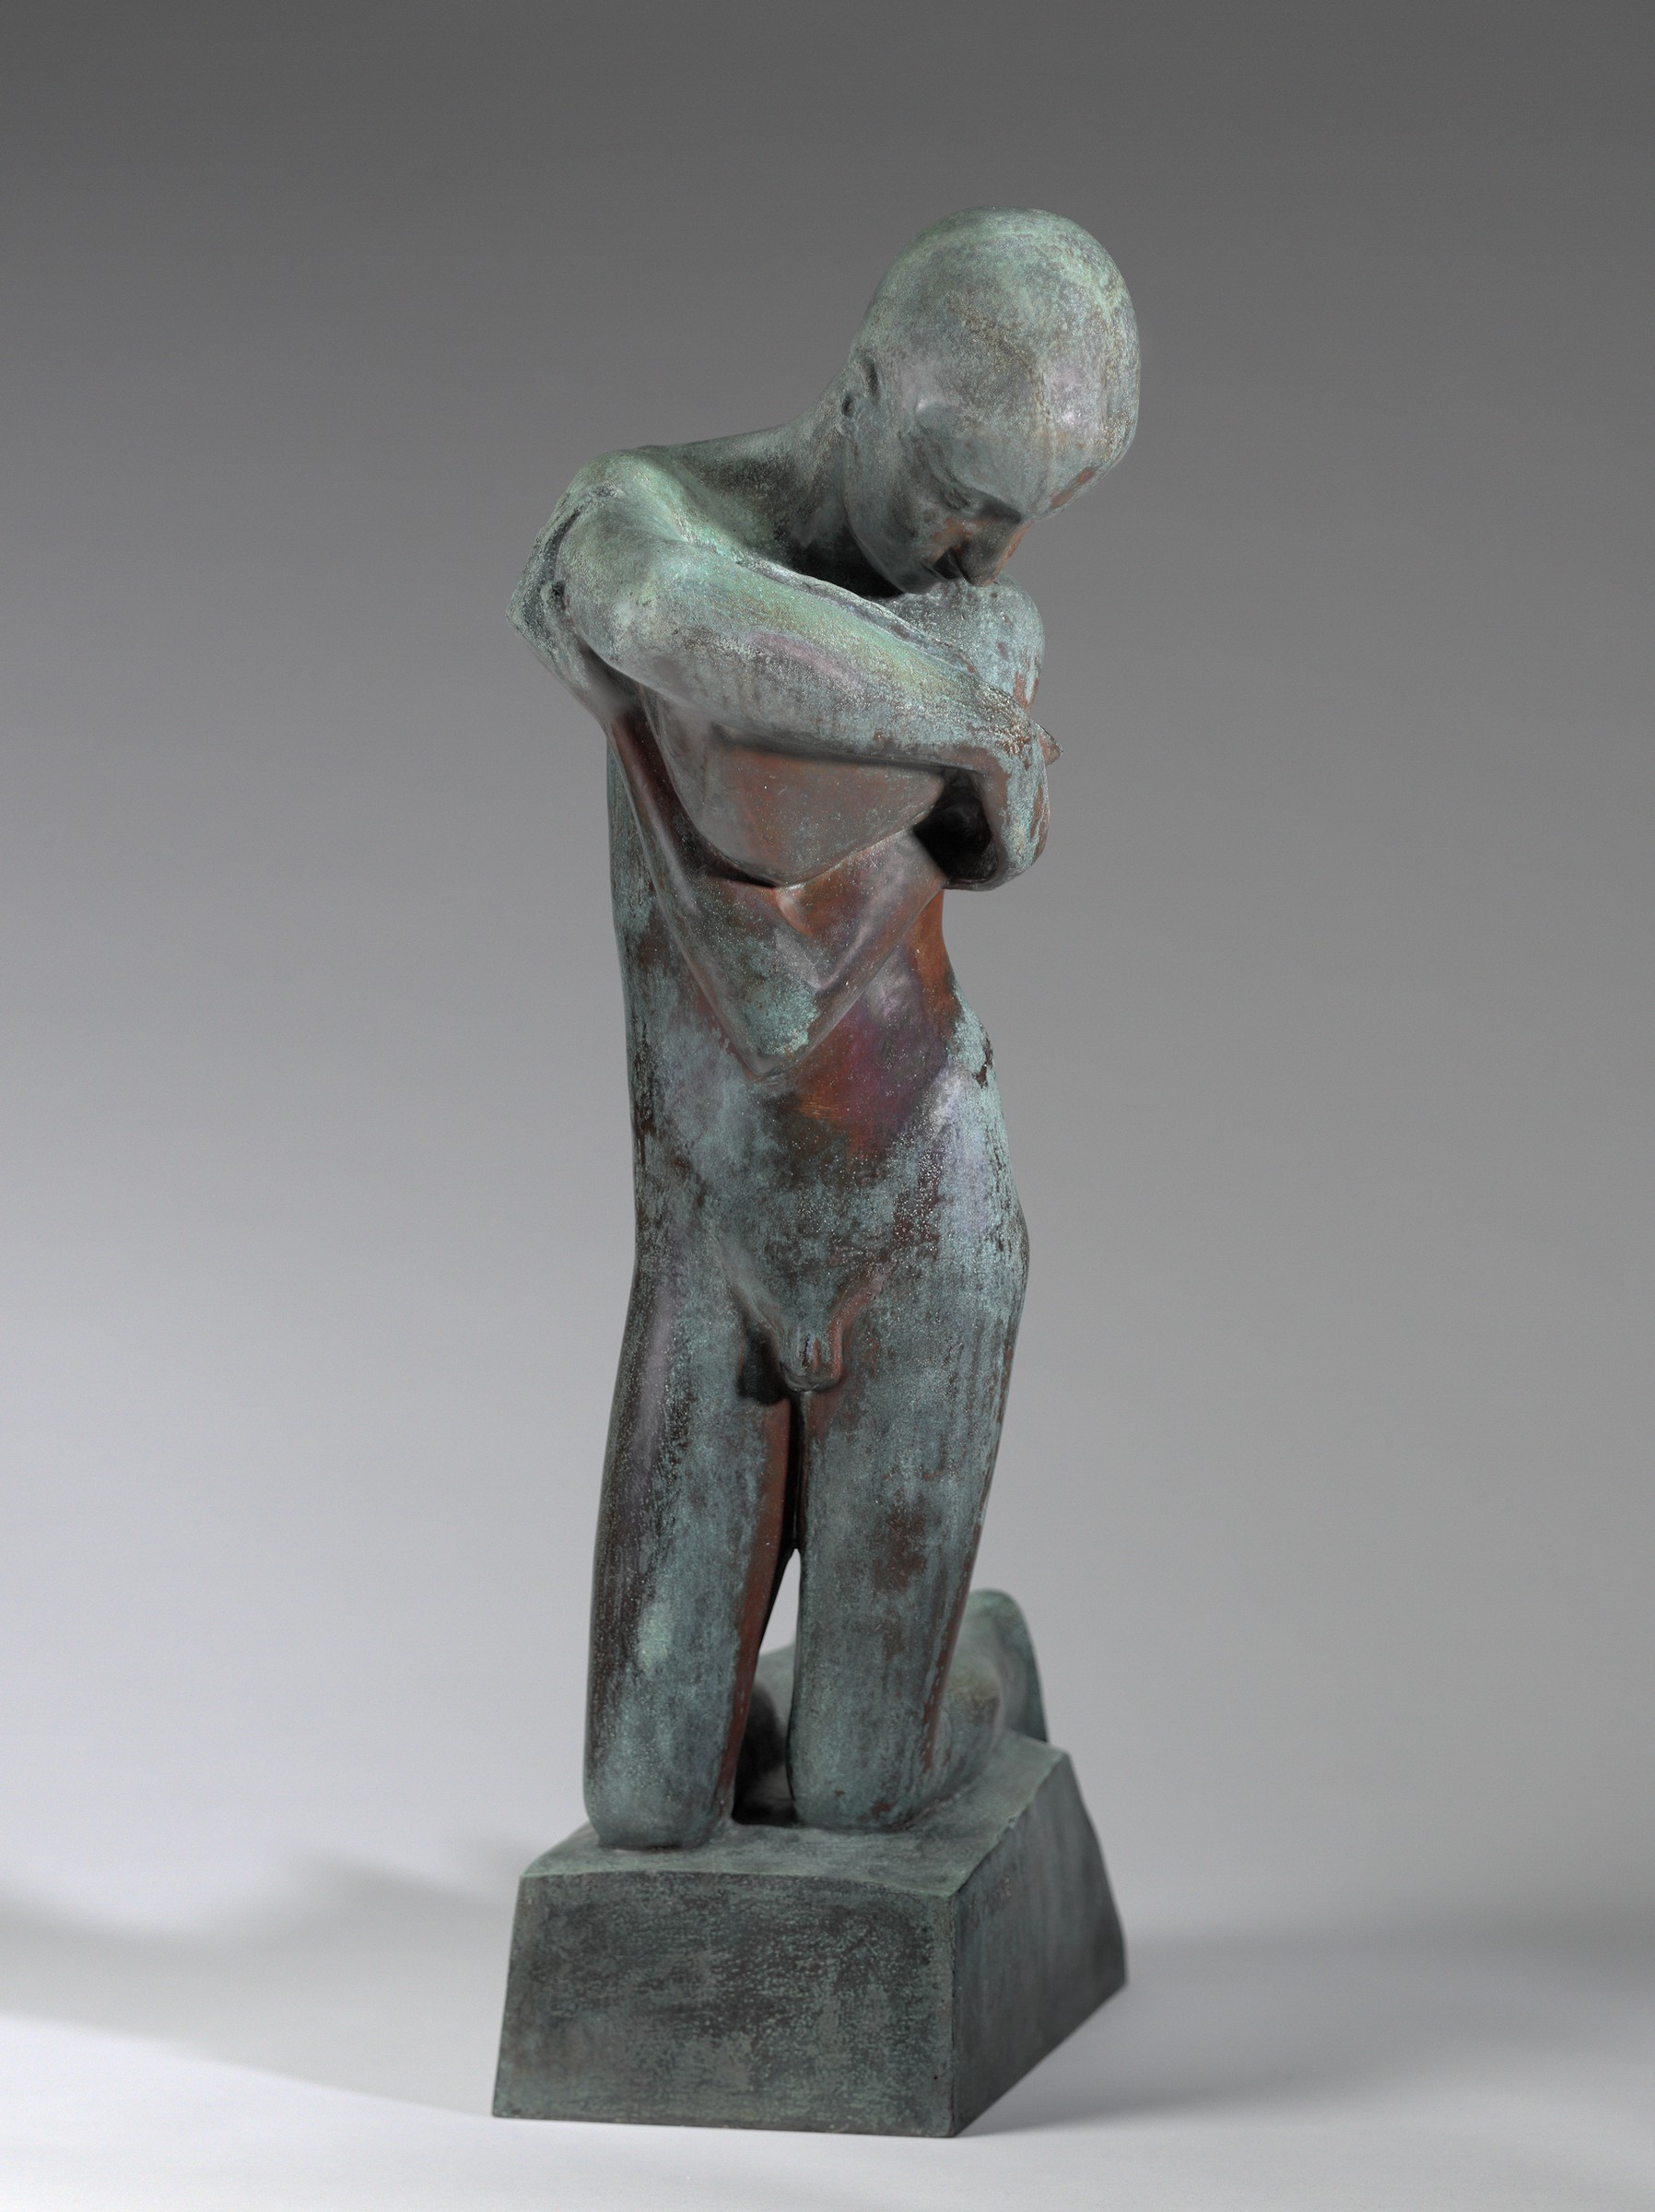 An abstract bronze sculpture of a human figure kneeling and cradling a shell